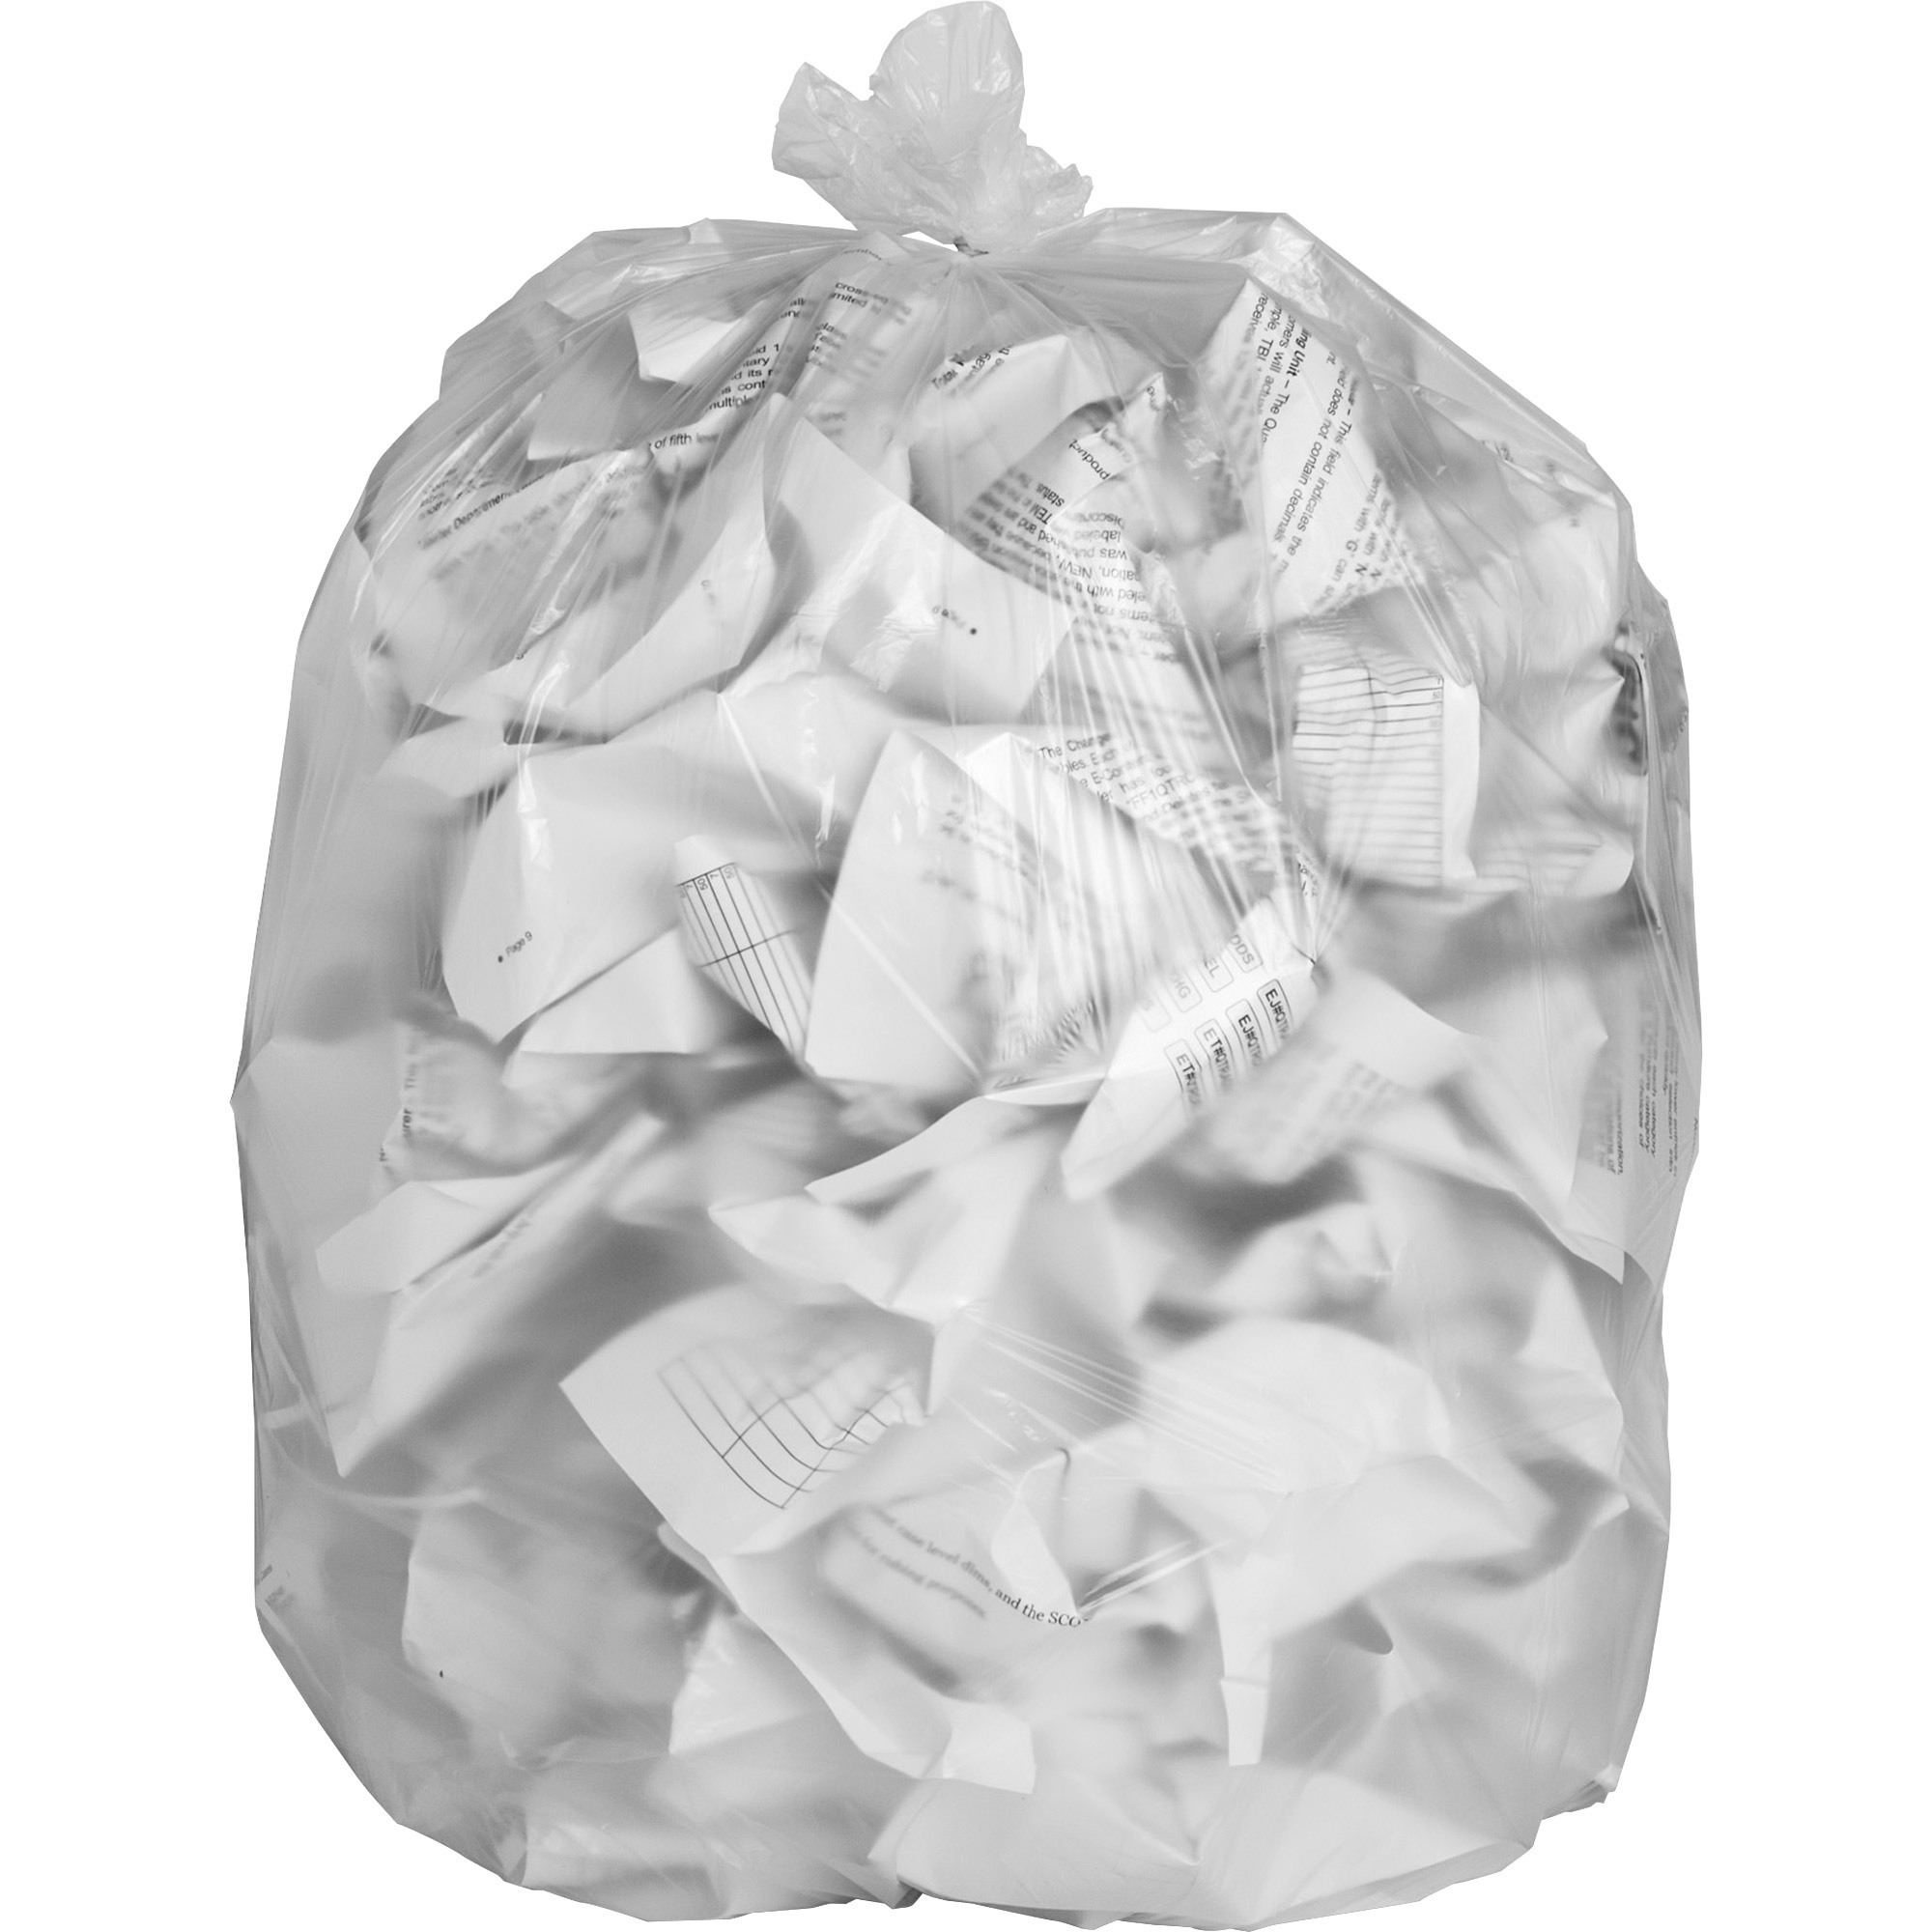 Special Buy, SPZHD334016, High-density Resin Trash Bags, 500 / Carton, Clear, 33 gal